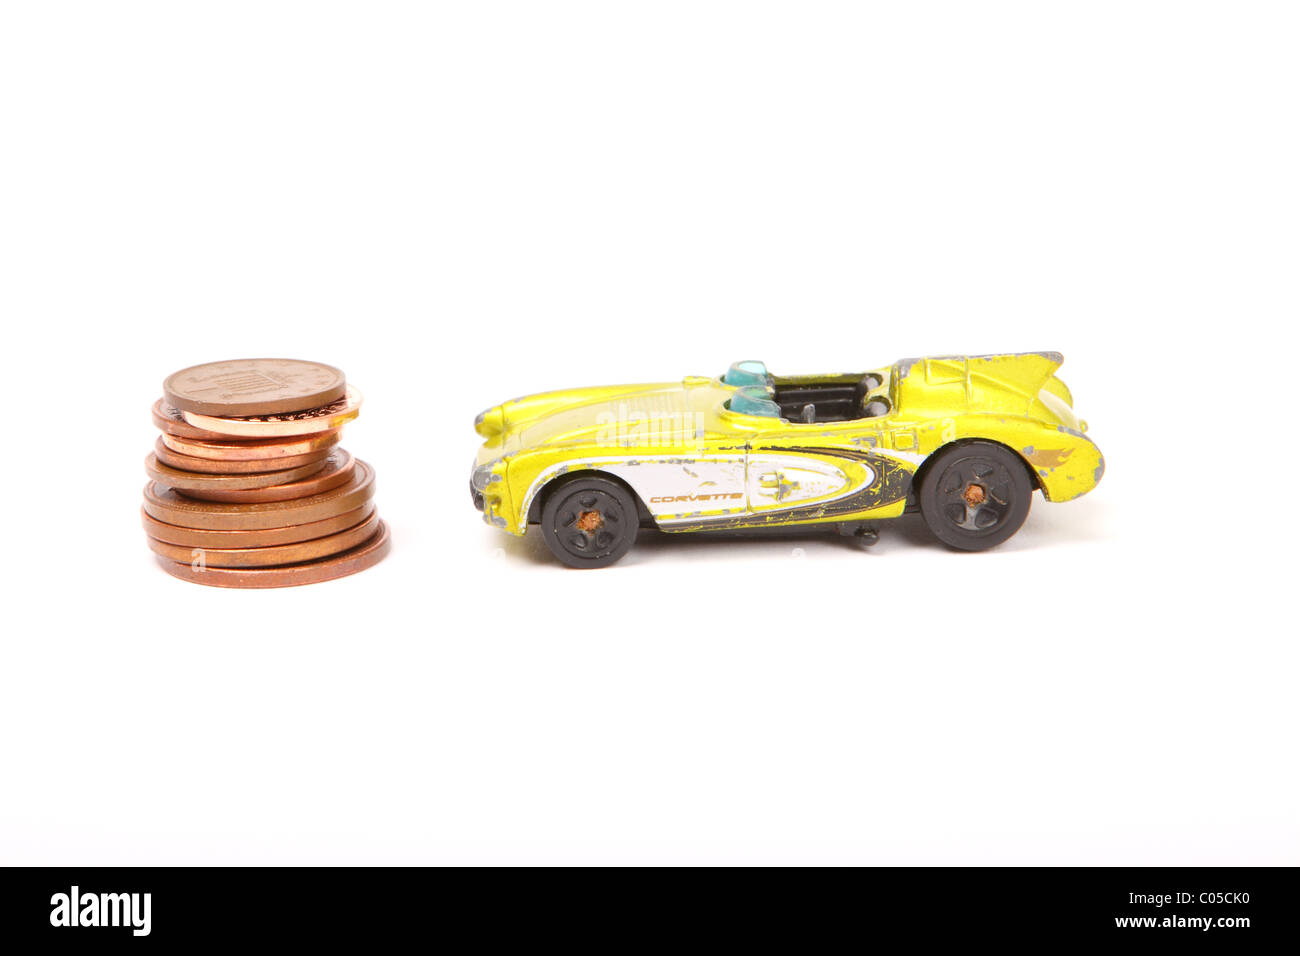 Old toy Corvette car with pile of penny pennies coins the cost of motoring - Stock Image